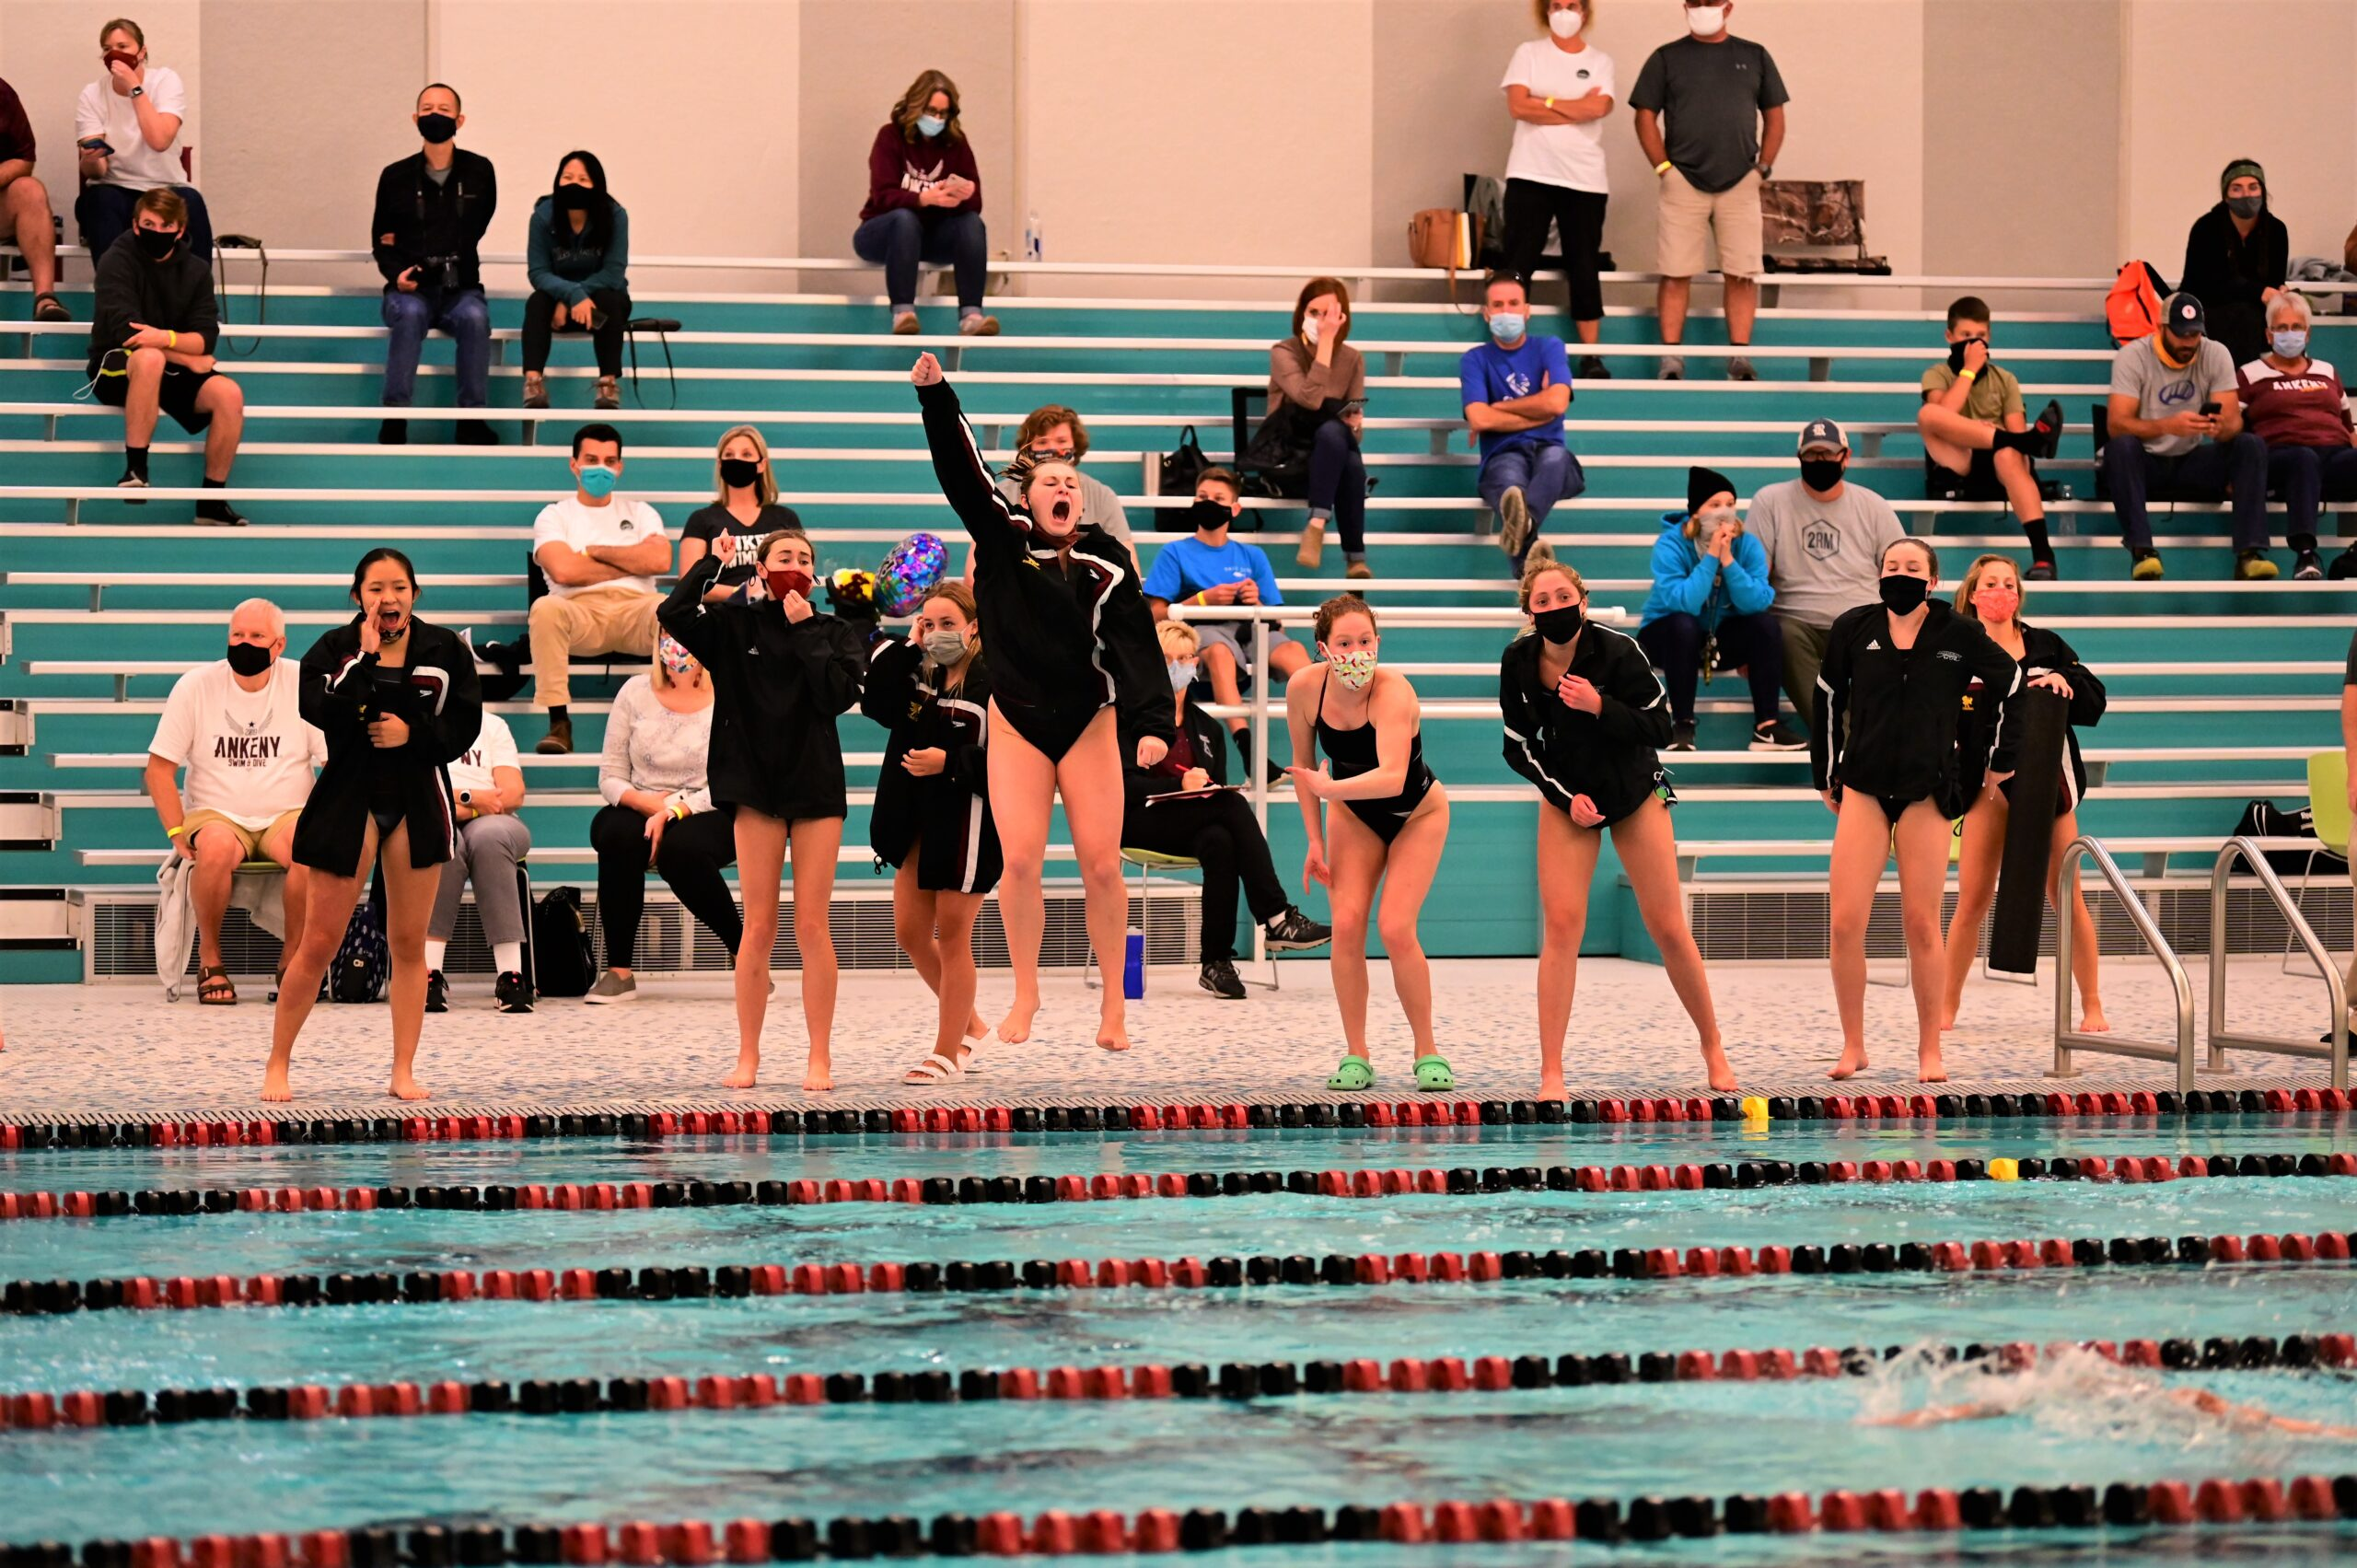 With their top swimmers sitting out, Hawkettes finish 3rd at conference meet